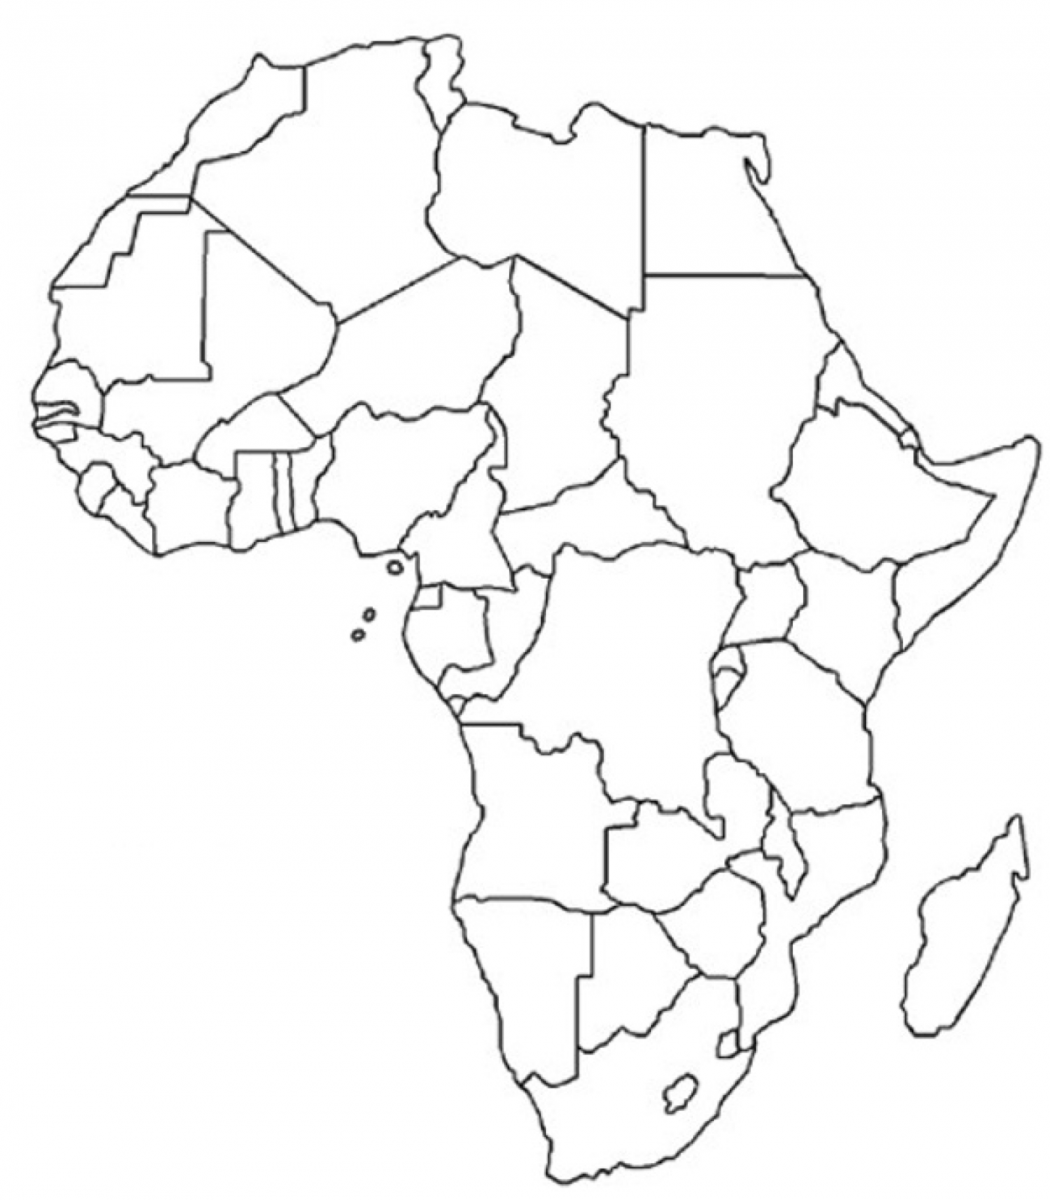 Blank Map Of Africa blank map of Africa   Unit on African music: have the kids fill in